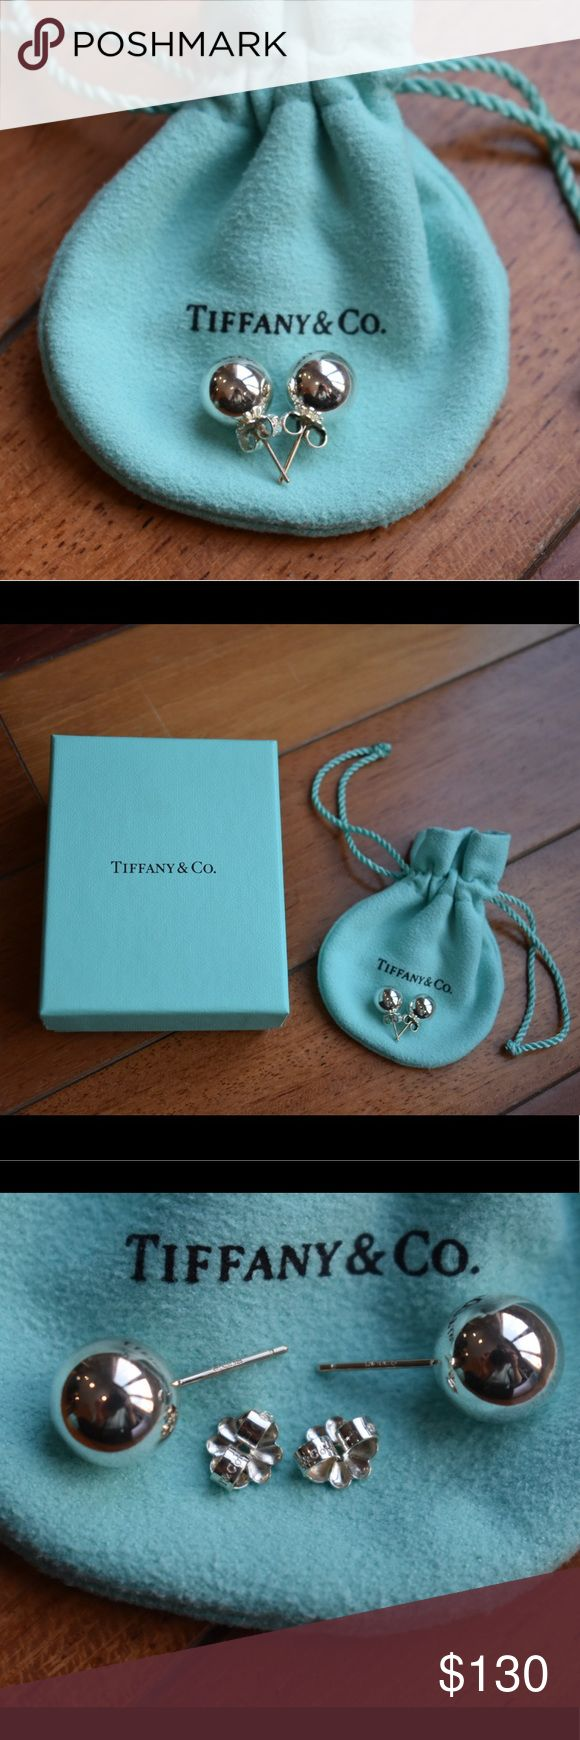 Authentic Tiffany & Co. Silver Ball Earrings, 10mm Tiffany & Co Silver Ball Earrings 10mm Studs with flower backs, .925 sterling silver, Perfect condition, only worn a handful of times, recently cleaned, includes Tiffany drawstring bag and box, 100% Authentic! Tiffany & Co. Jewelry Earrings